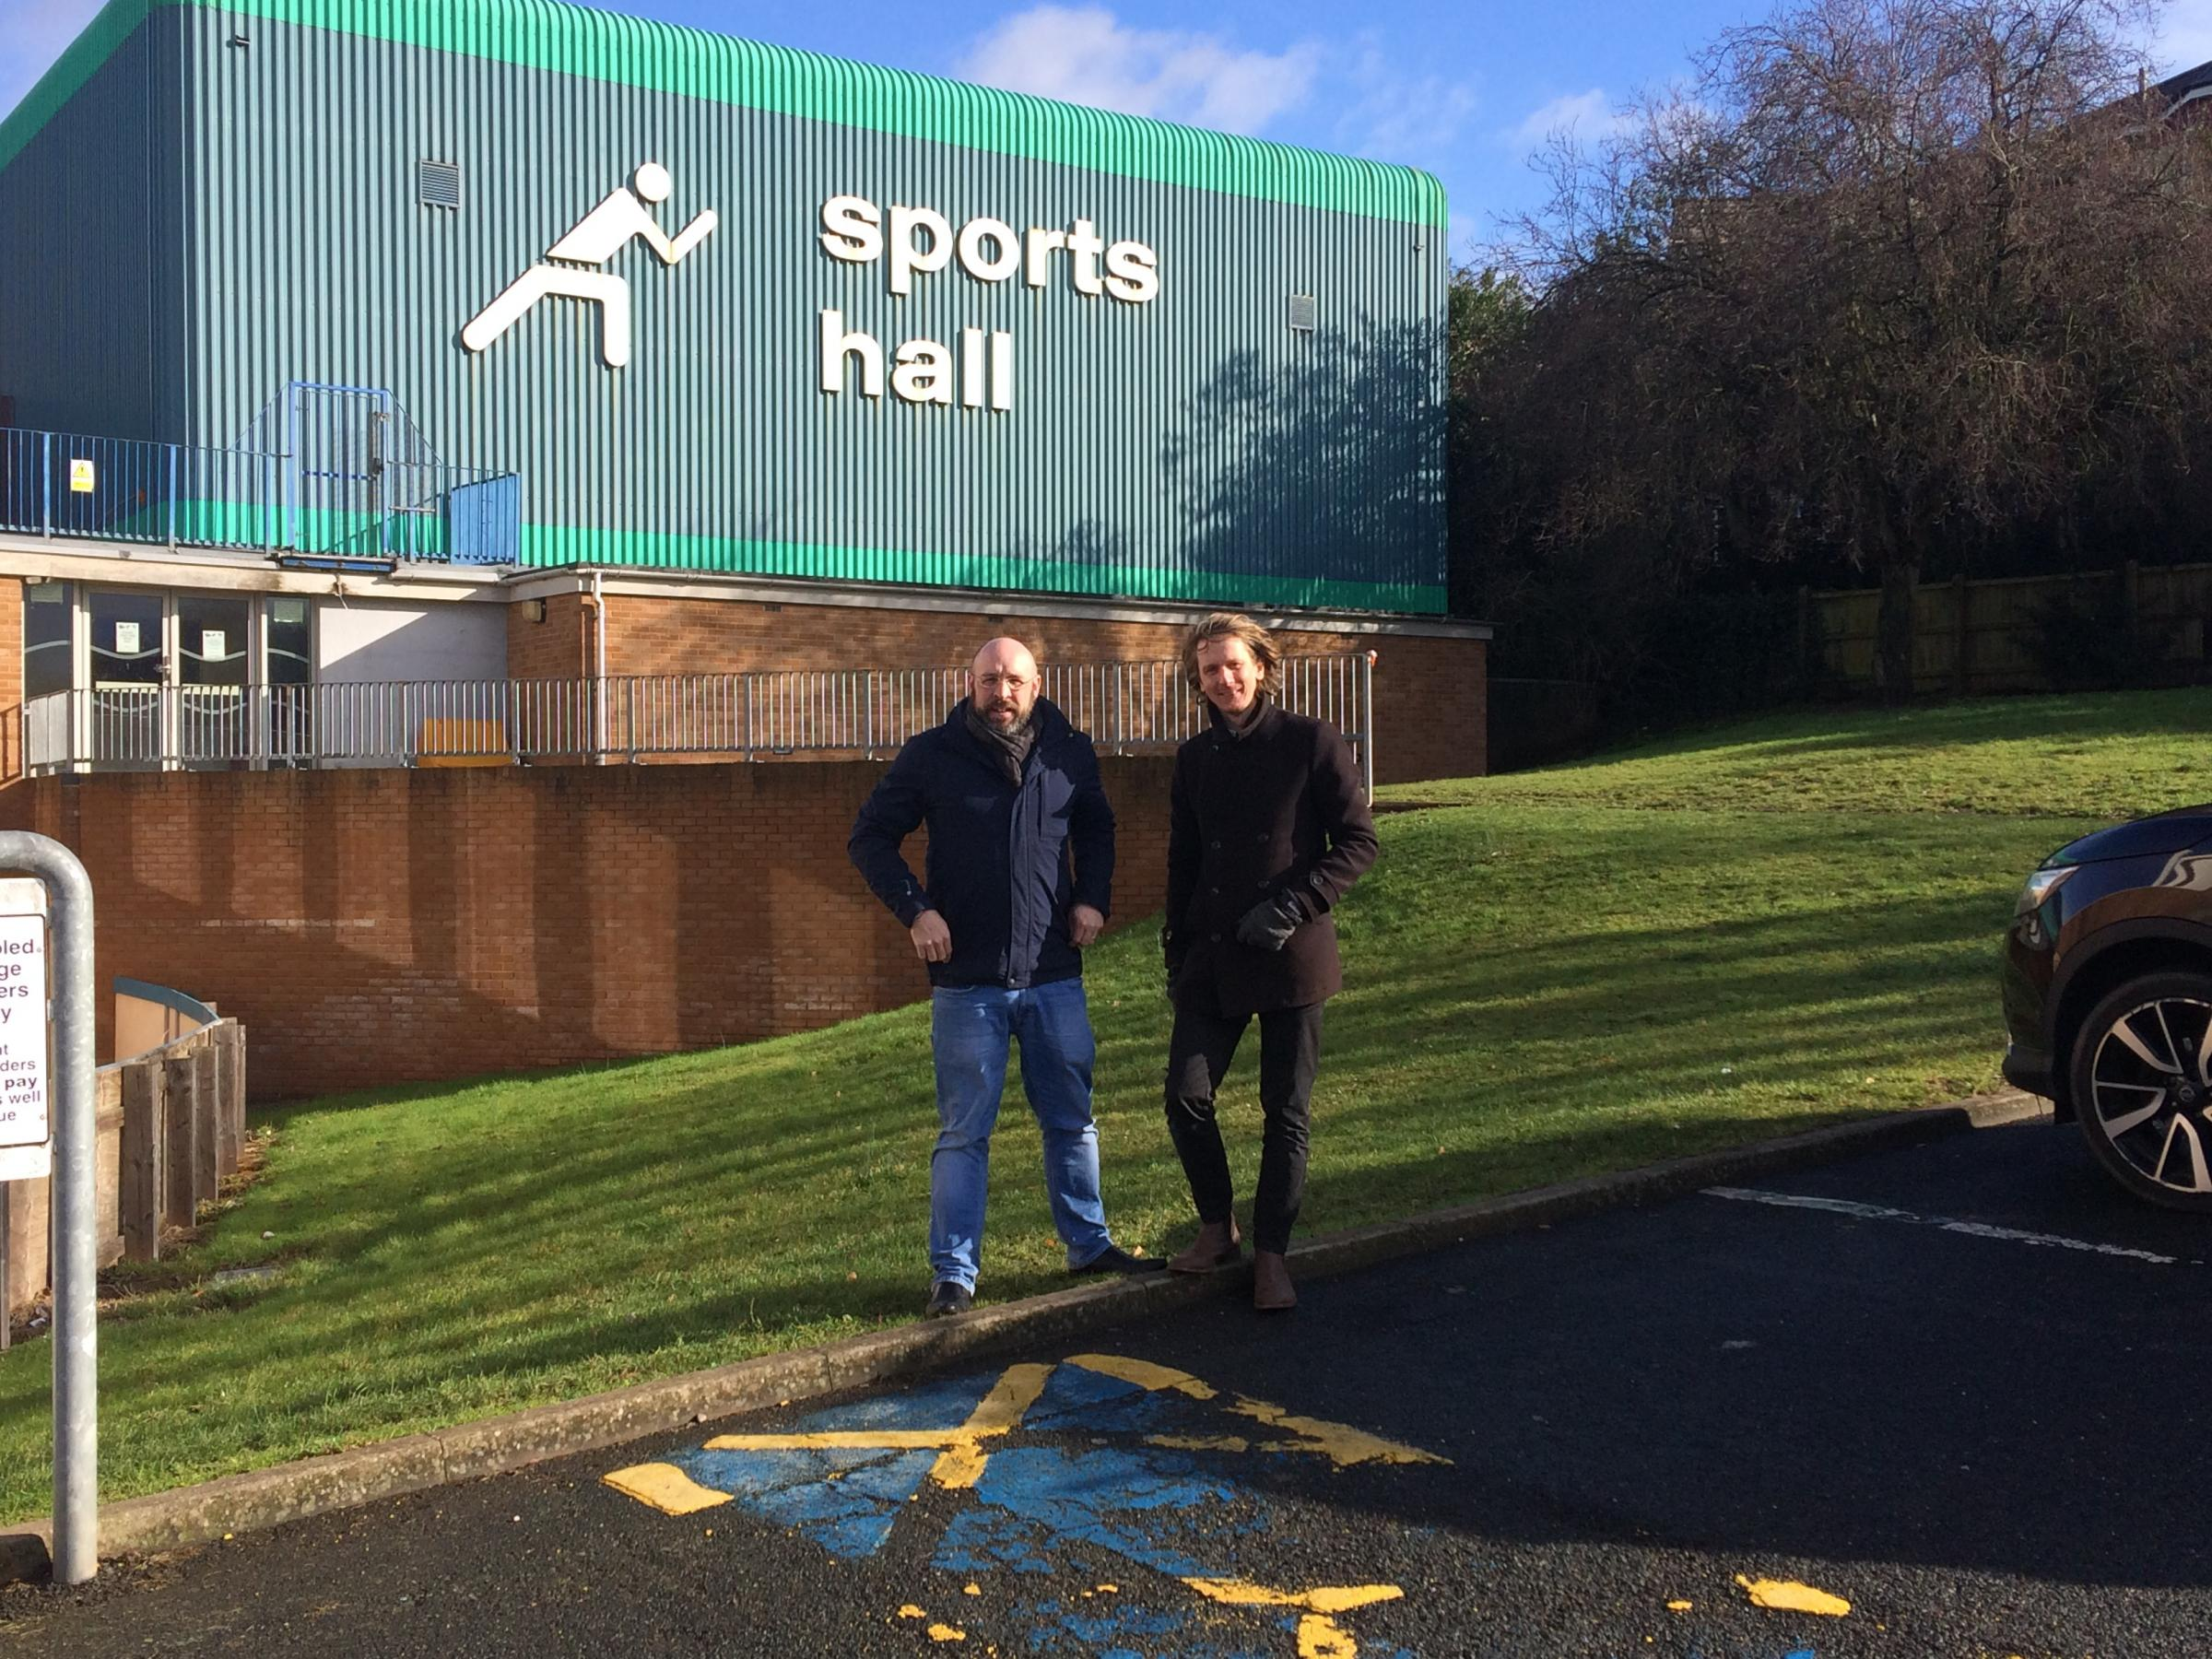 Michael Thompson (Labour leader and candidate for Charford) and Rory Shannon (Labour secretary and candidate for Aston Fields) outside of the condemned sports hall.